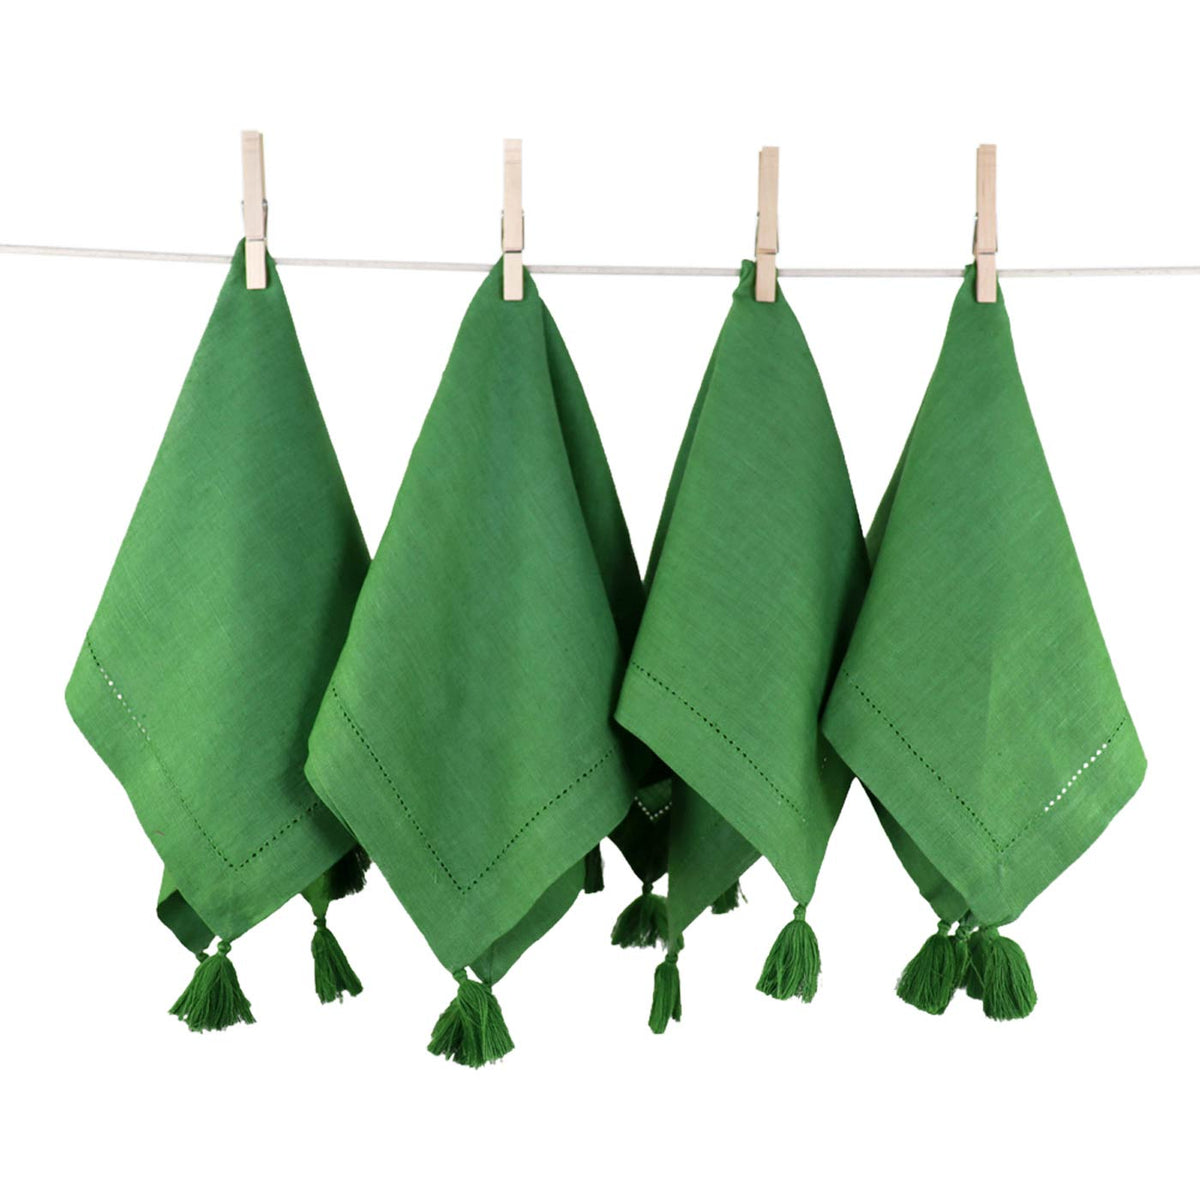 Solid Green Linen Napkin|Set of 4